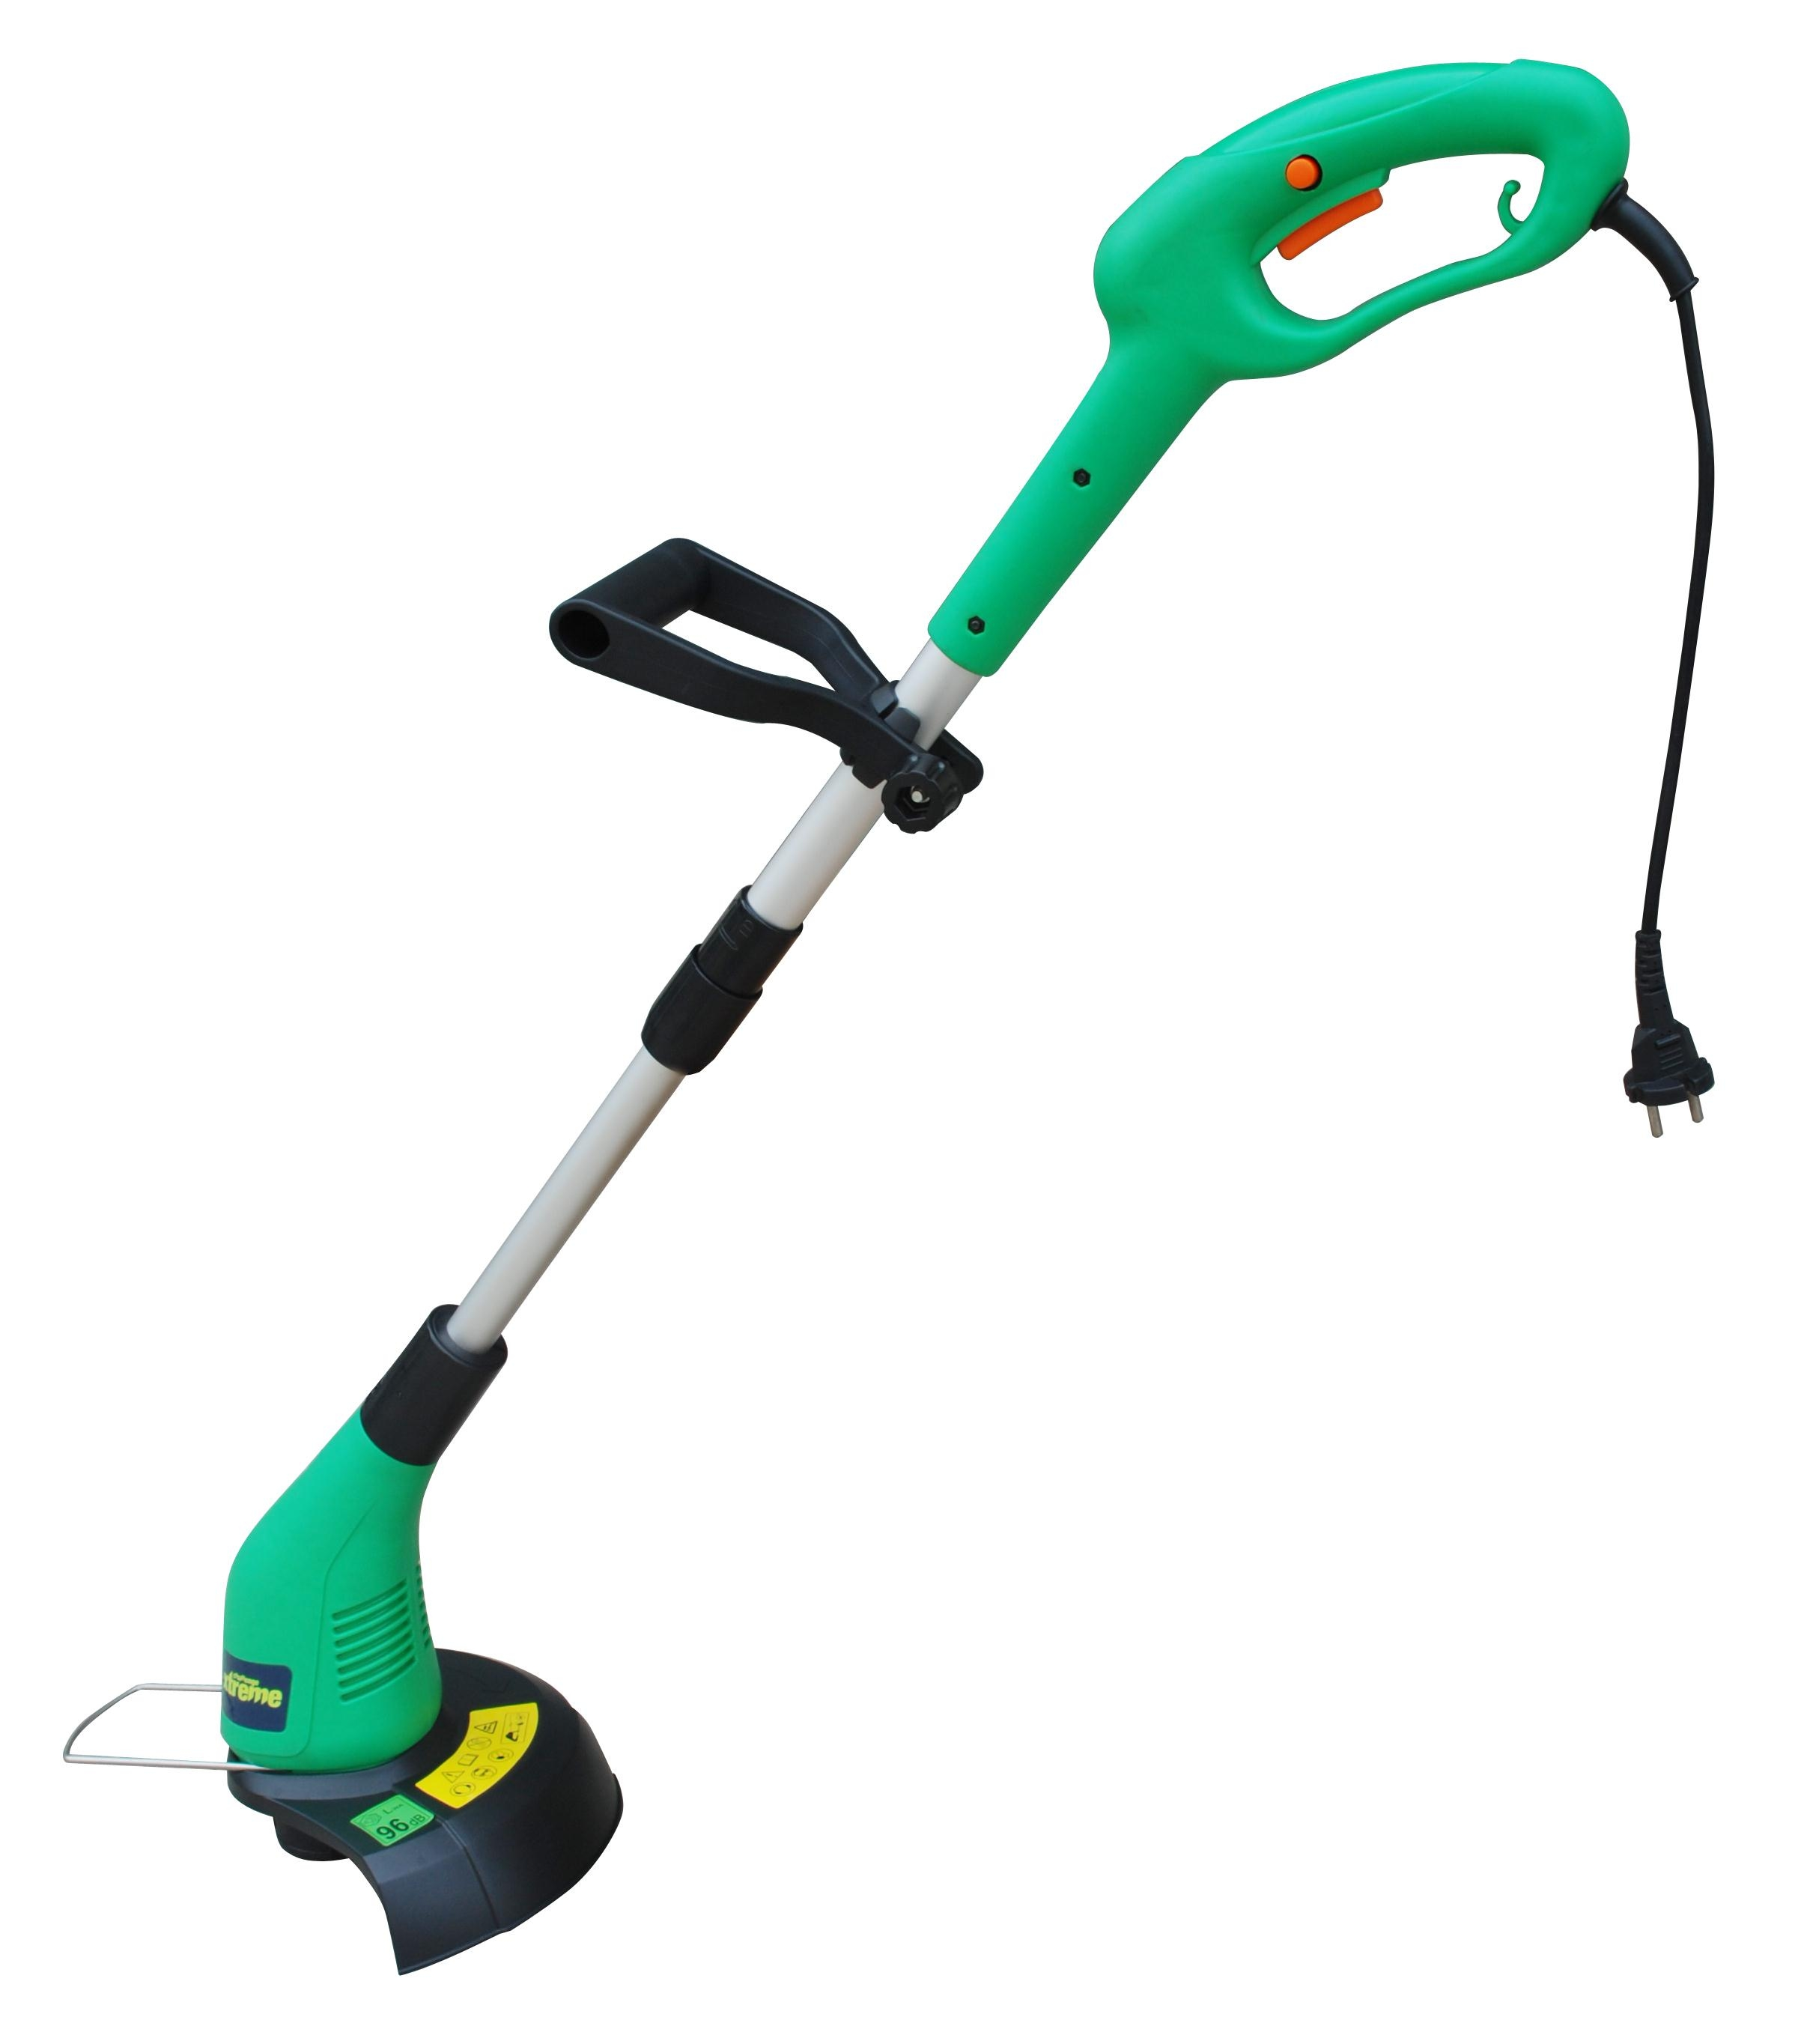 Household electric mower grass trimmer weed small lawn repair machine 220V factory fence pin(China (Mainland))